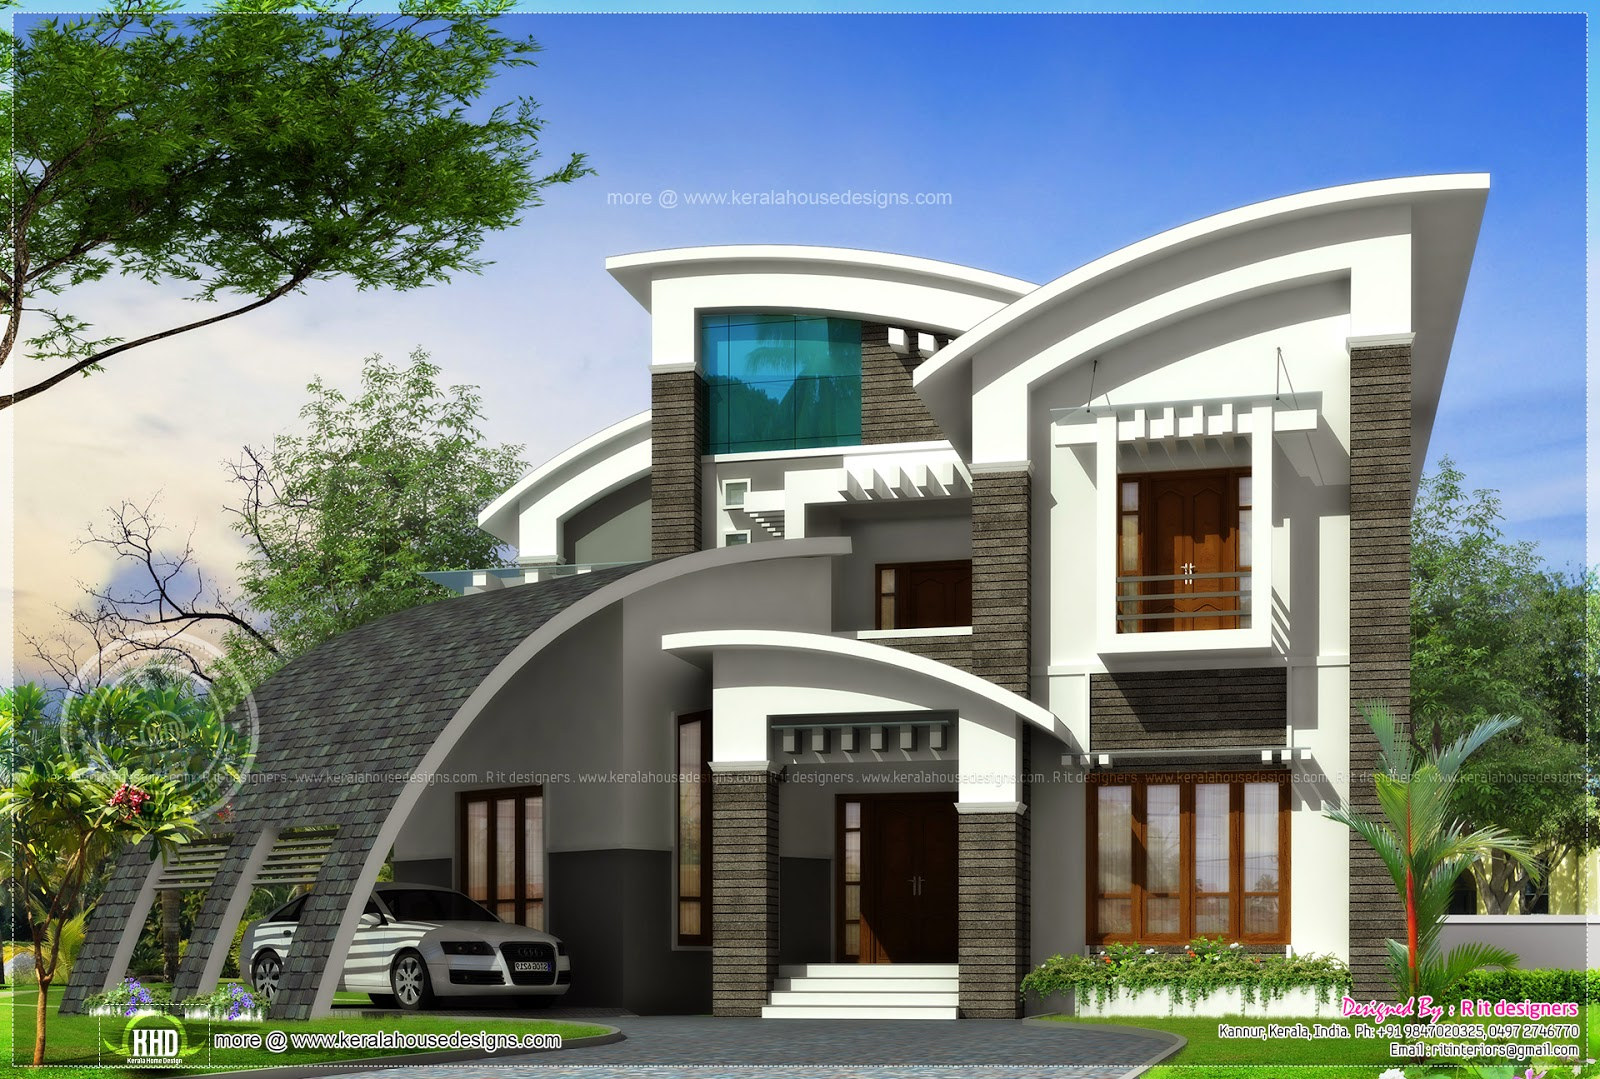 Super luxury ultra modern house design kerala home for Modern building plans